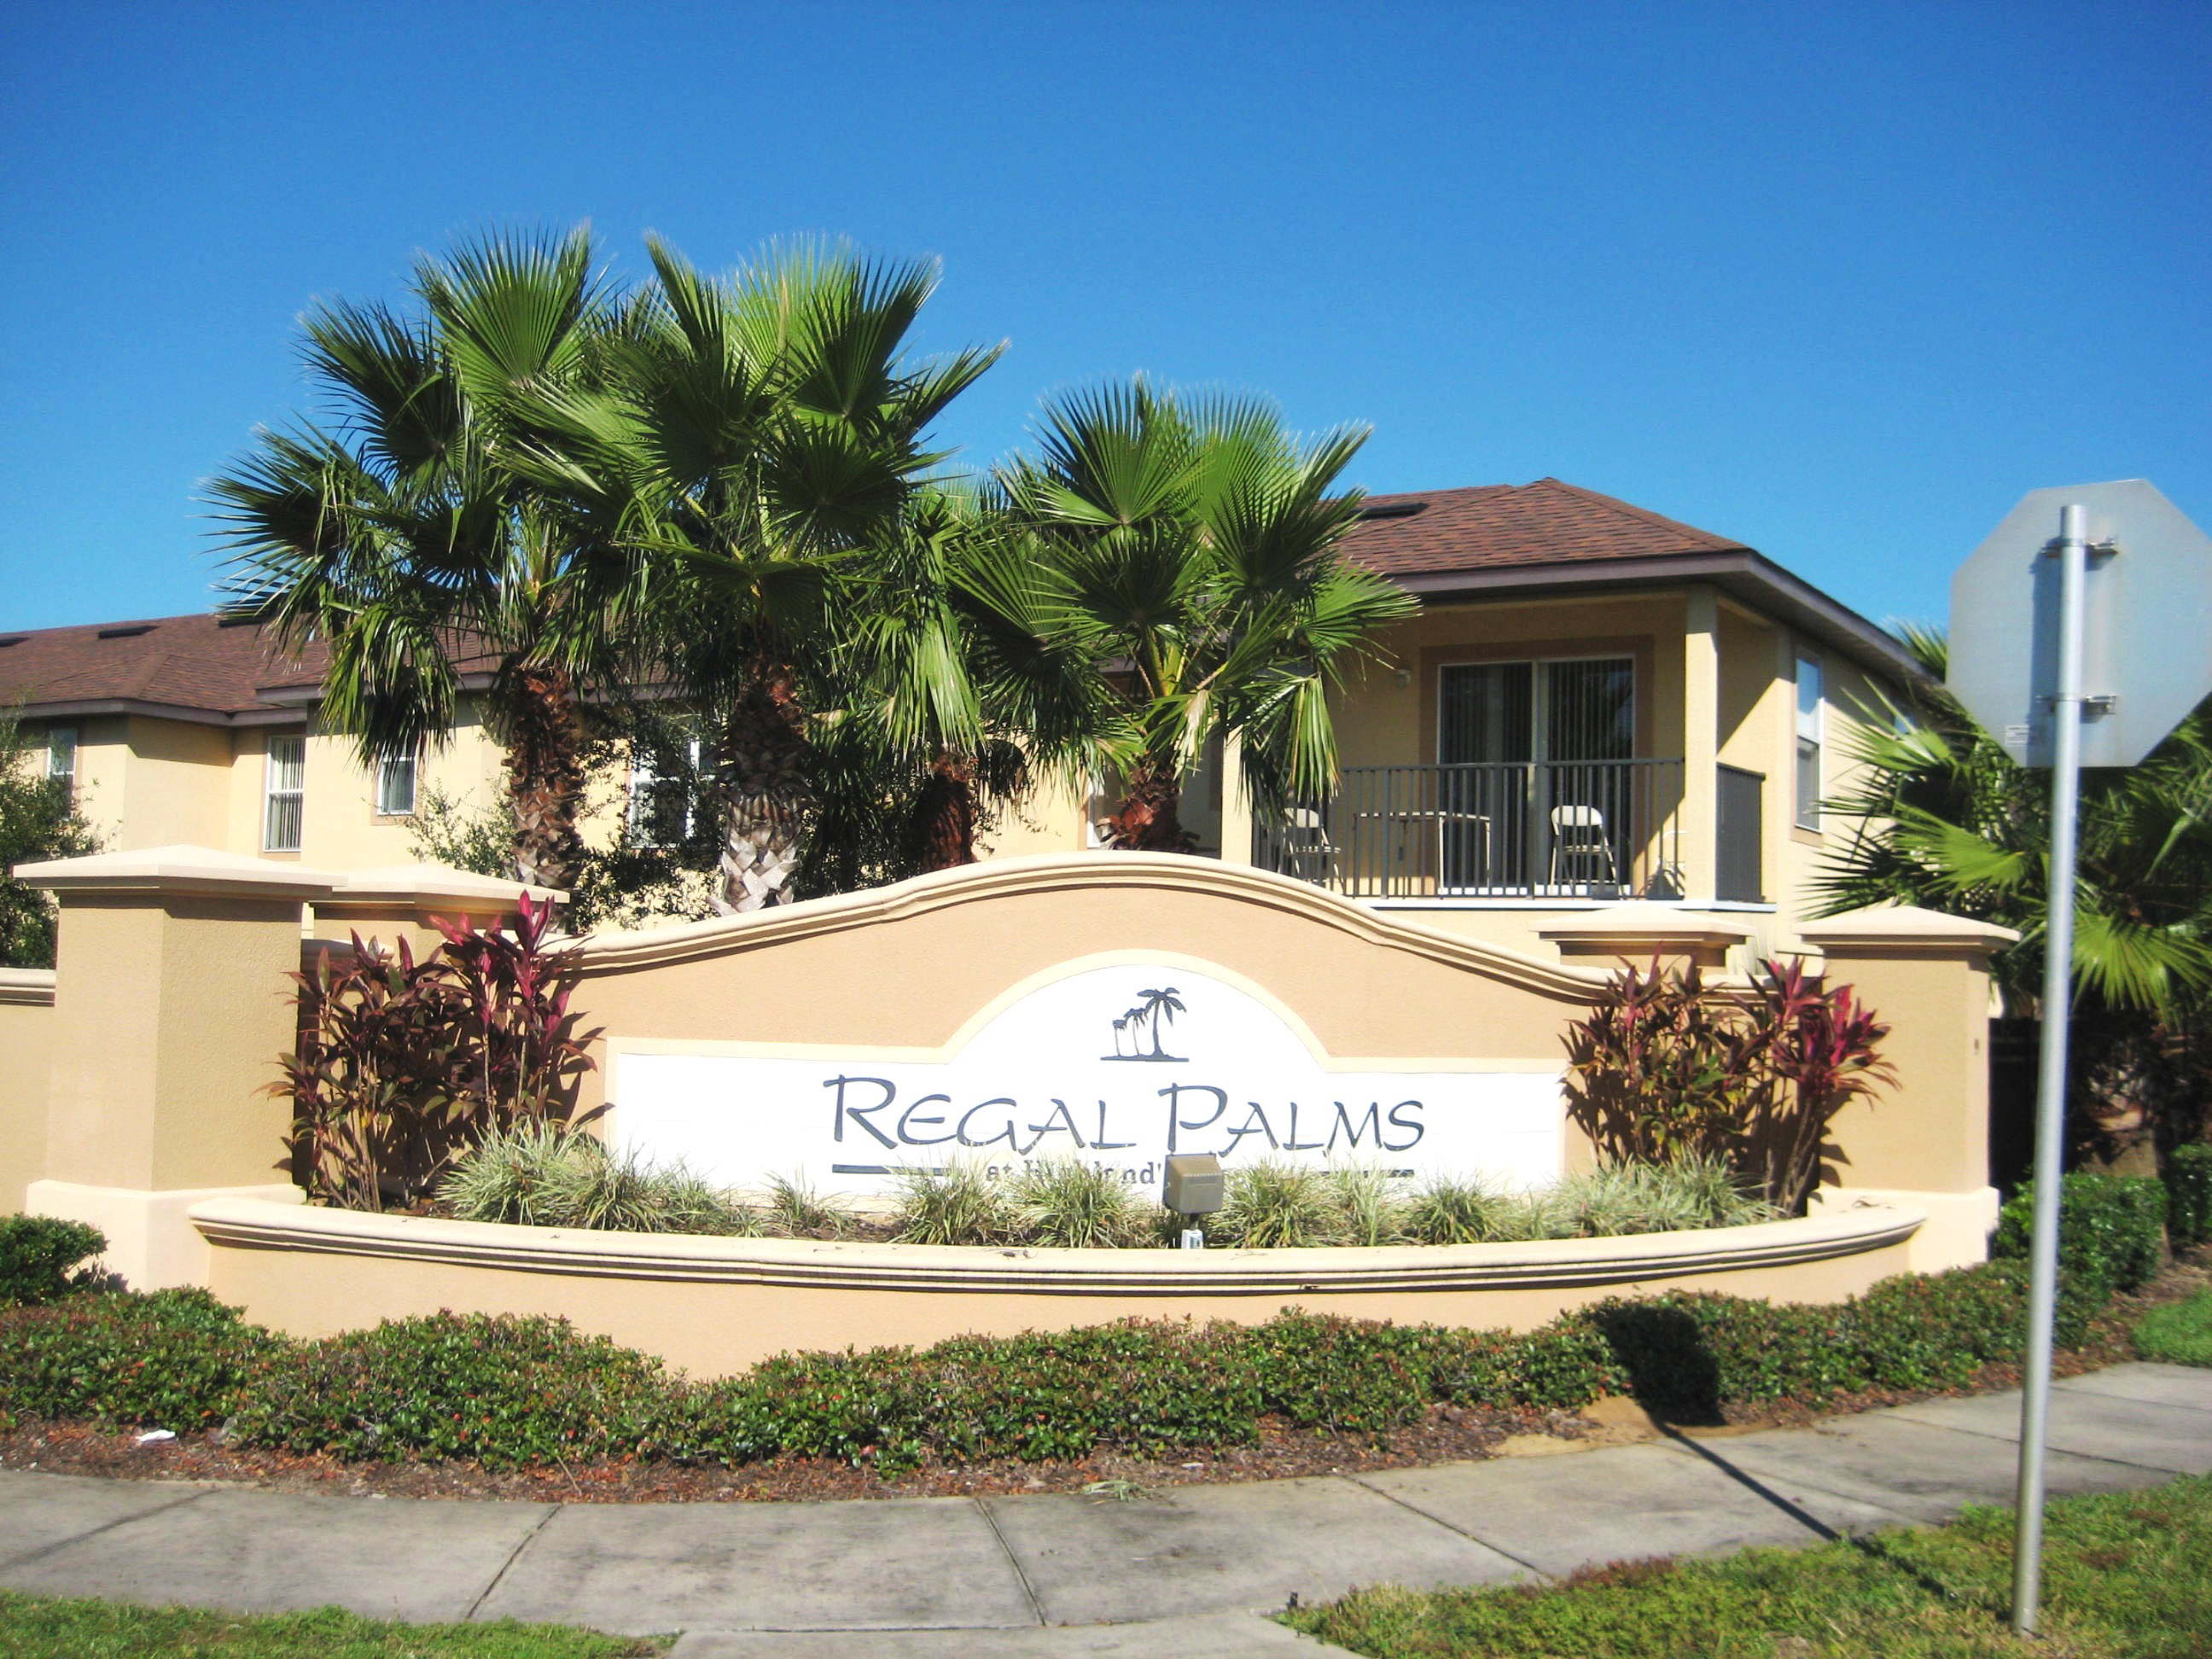 4 Bedroom House At Regal Palms Resort Davenport Florida Near Disney